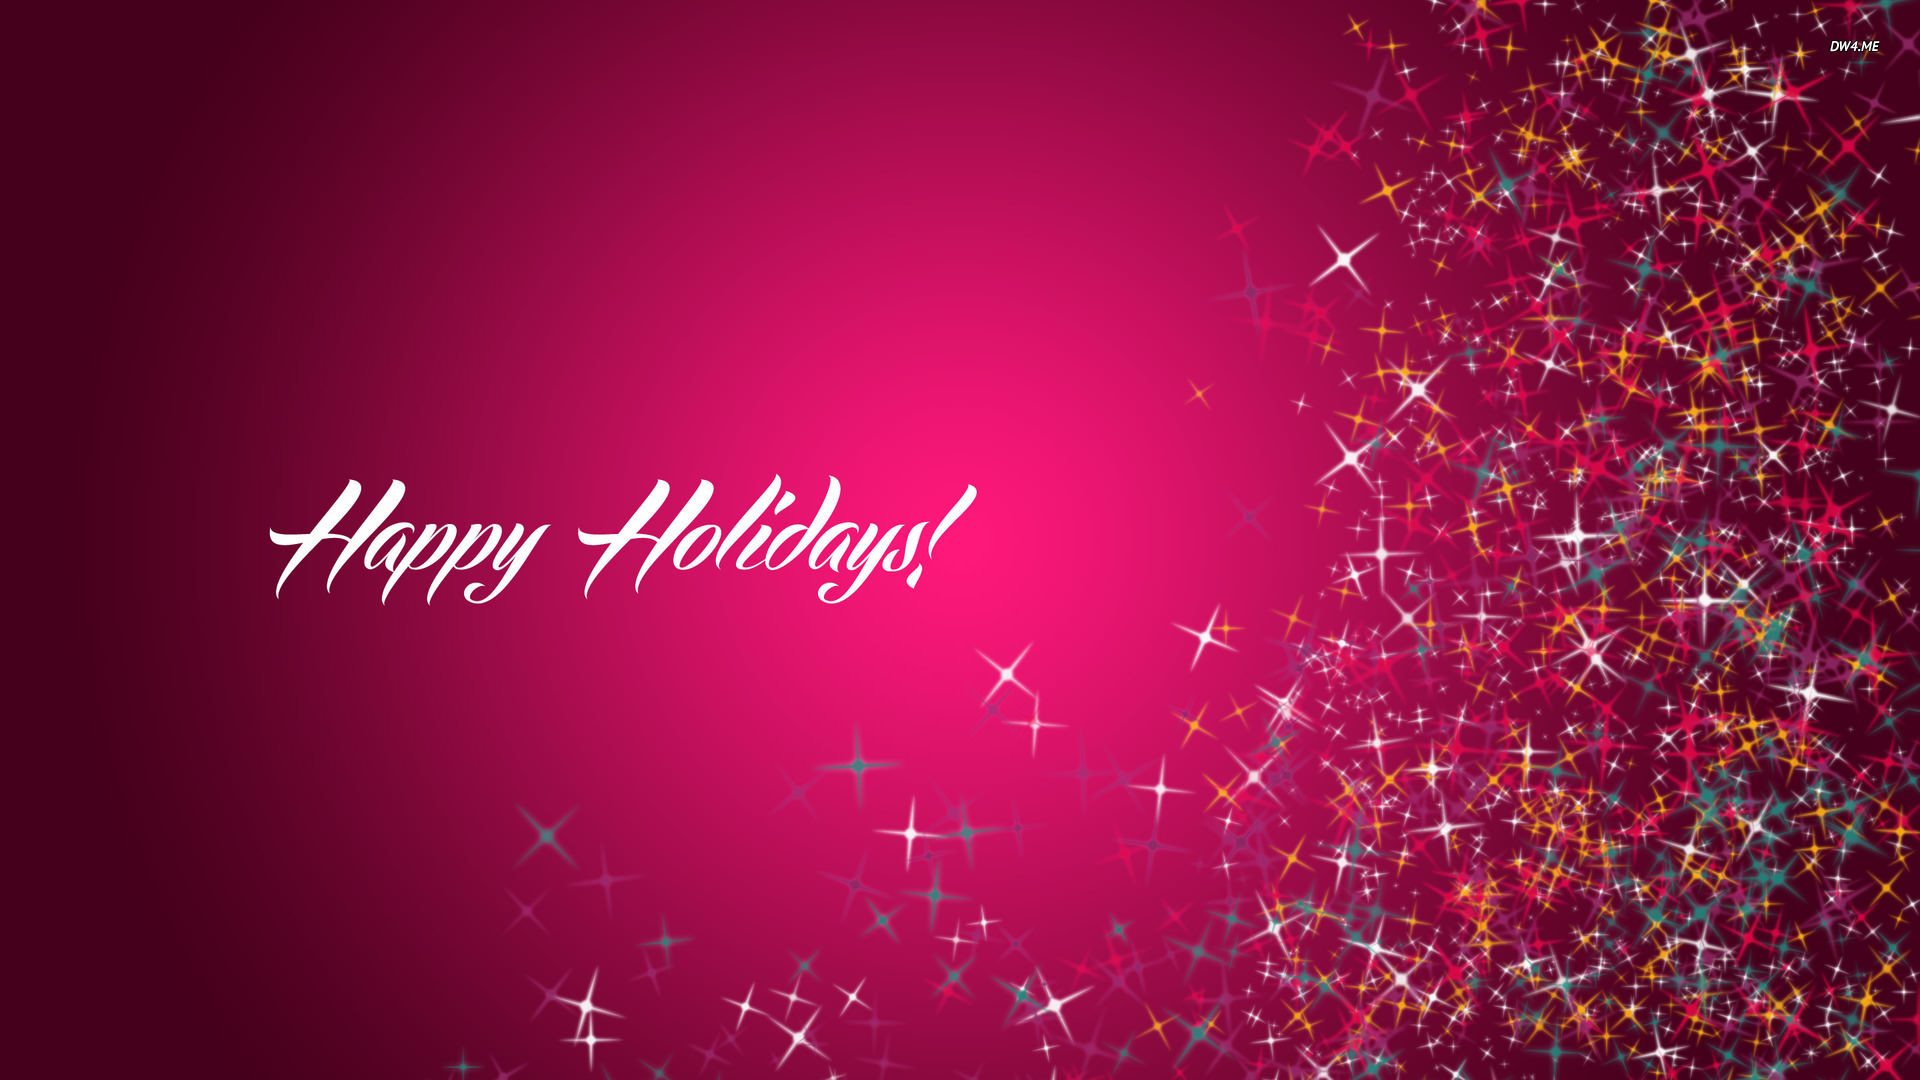 1920x1080 Dream Holiday Screensaver For Windows And Free Live Wallpaper Android